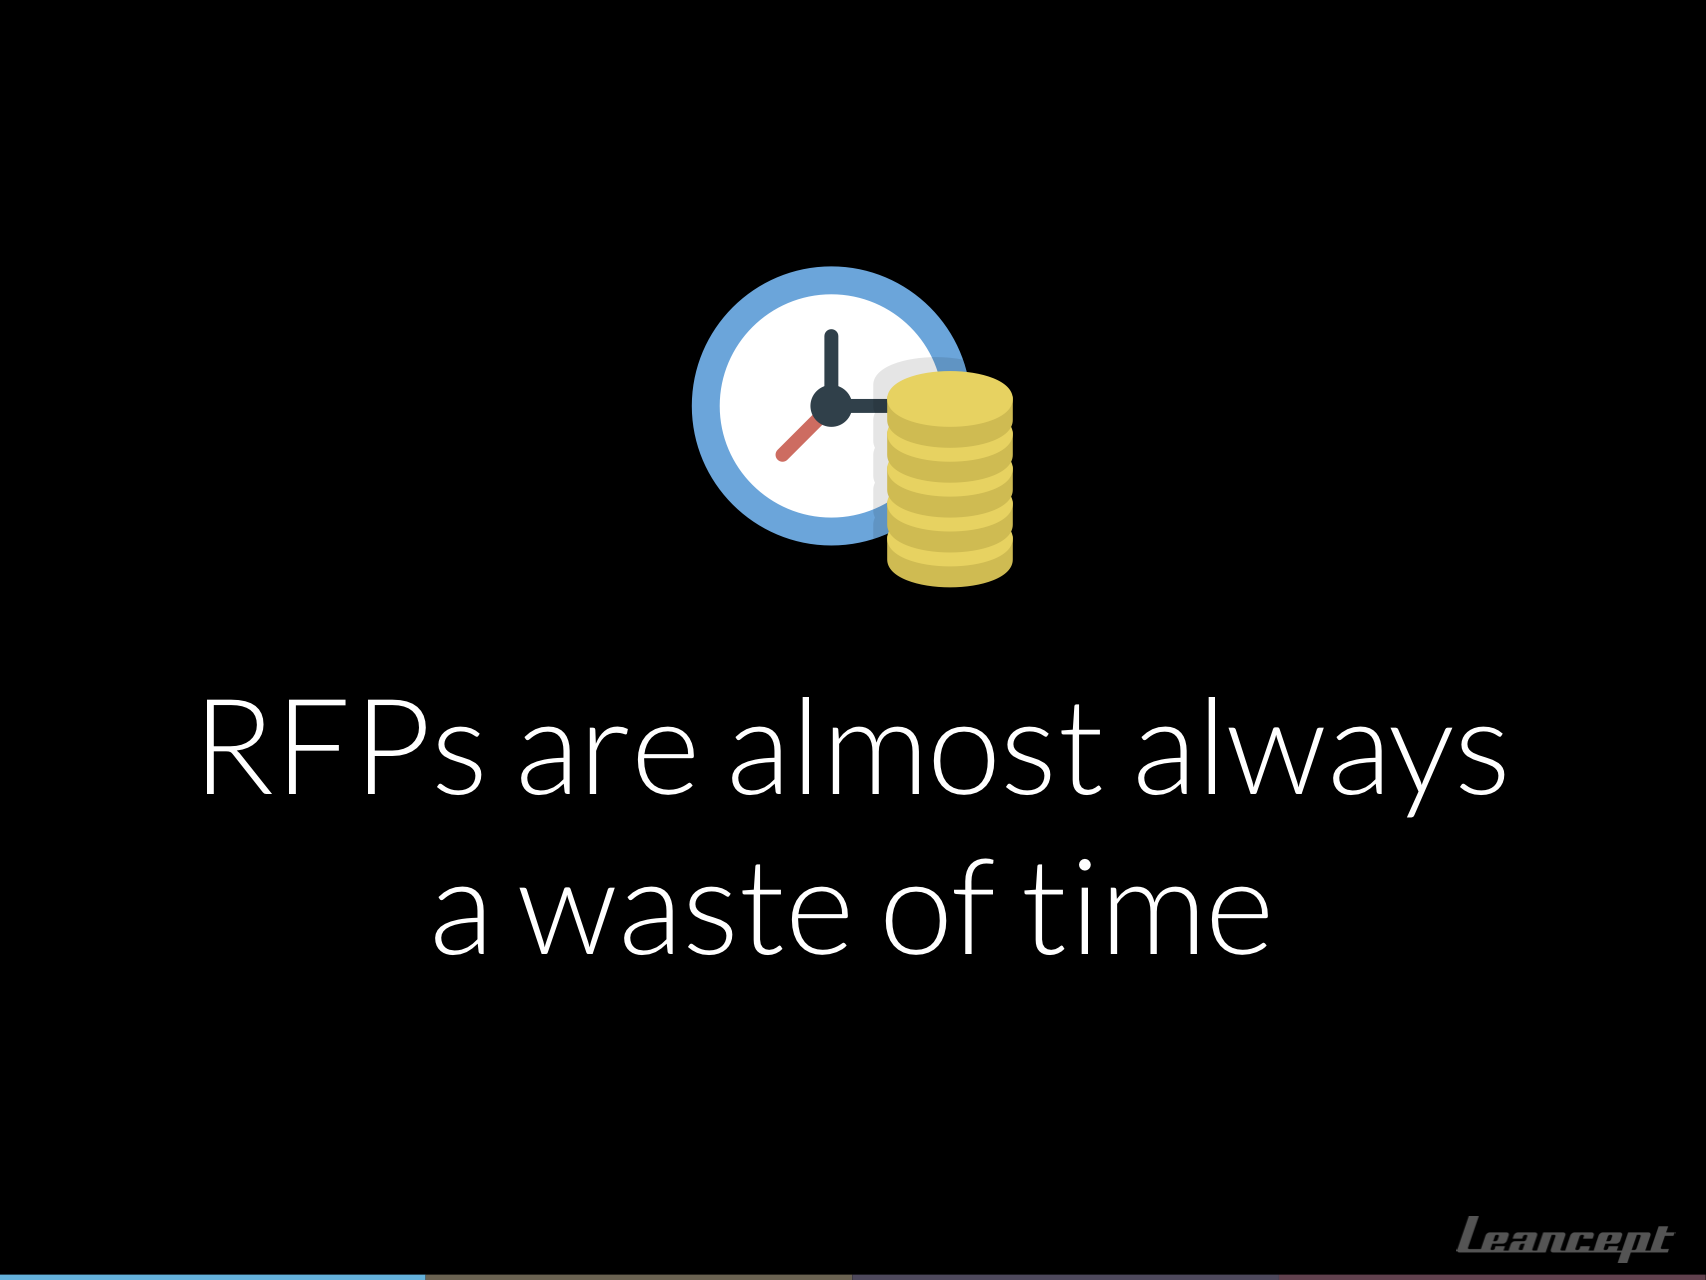 Not all RFPs are a waste of time, but most are. It's wise to learn how to tell the difference.